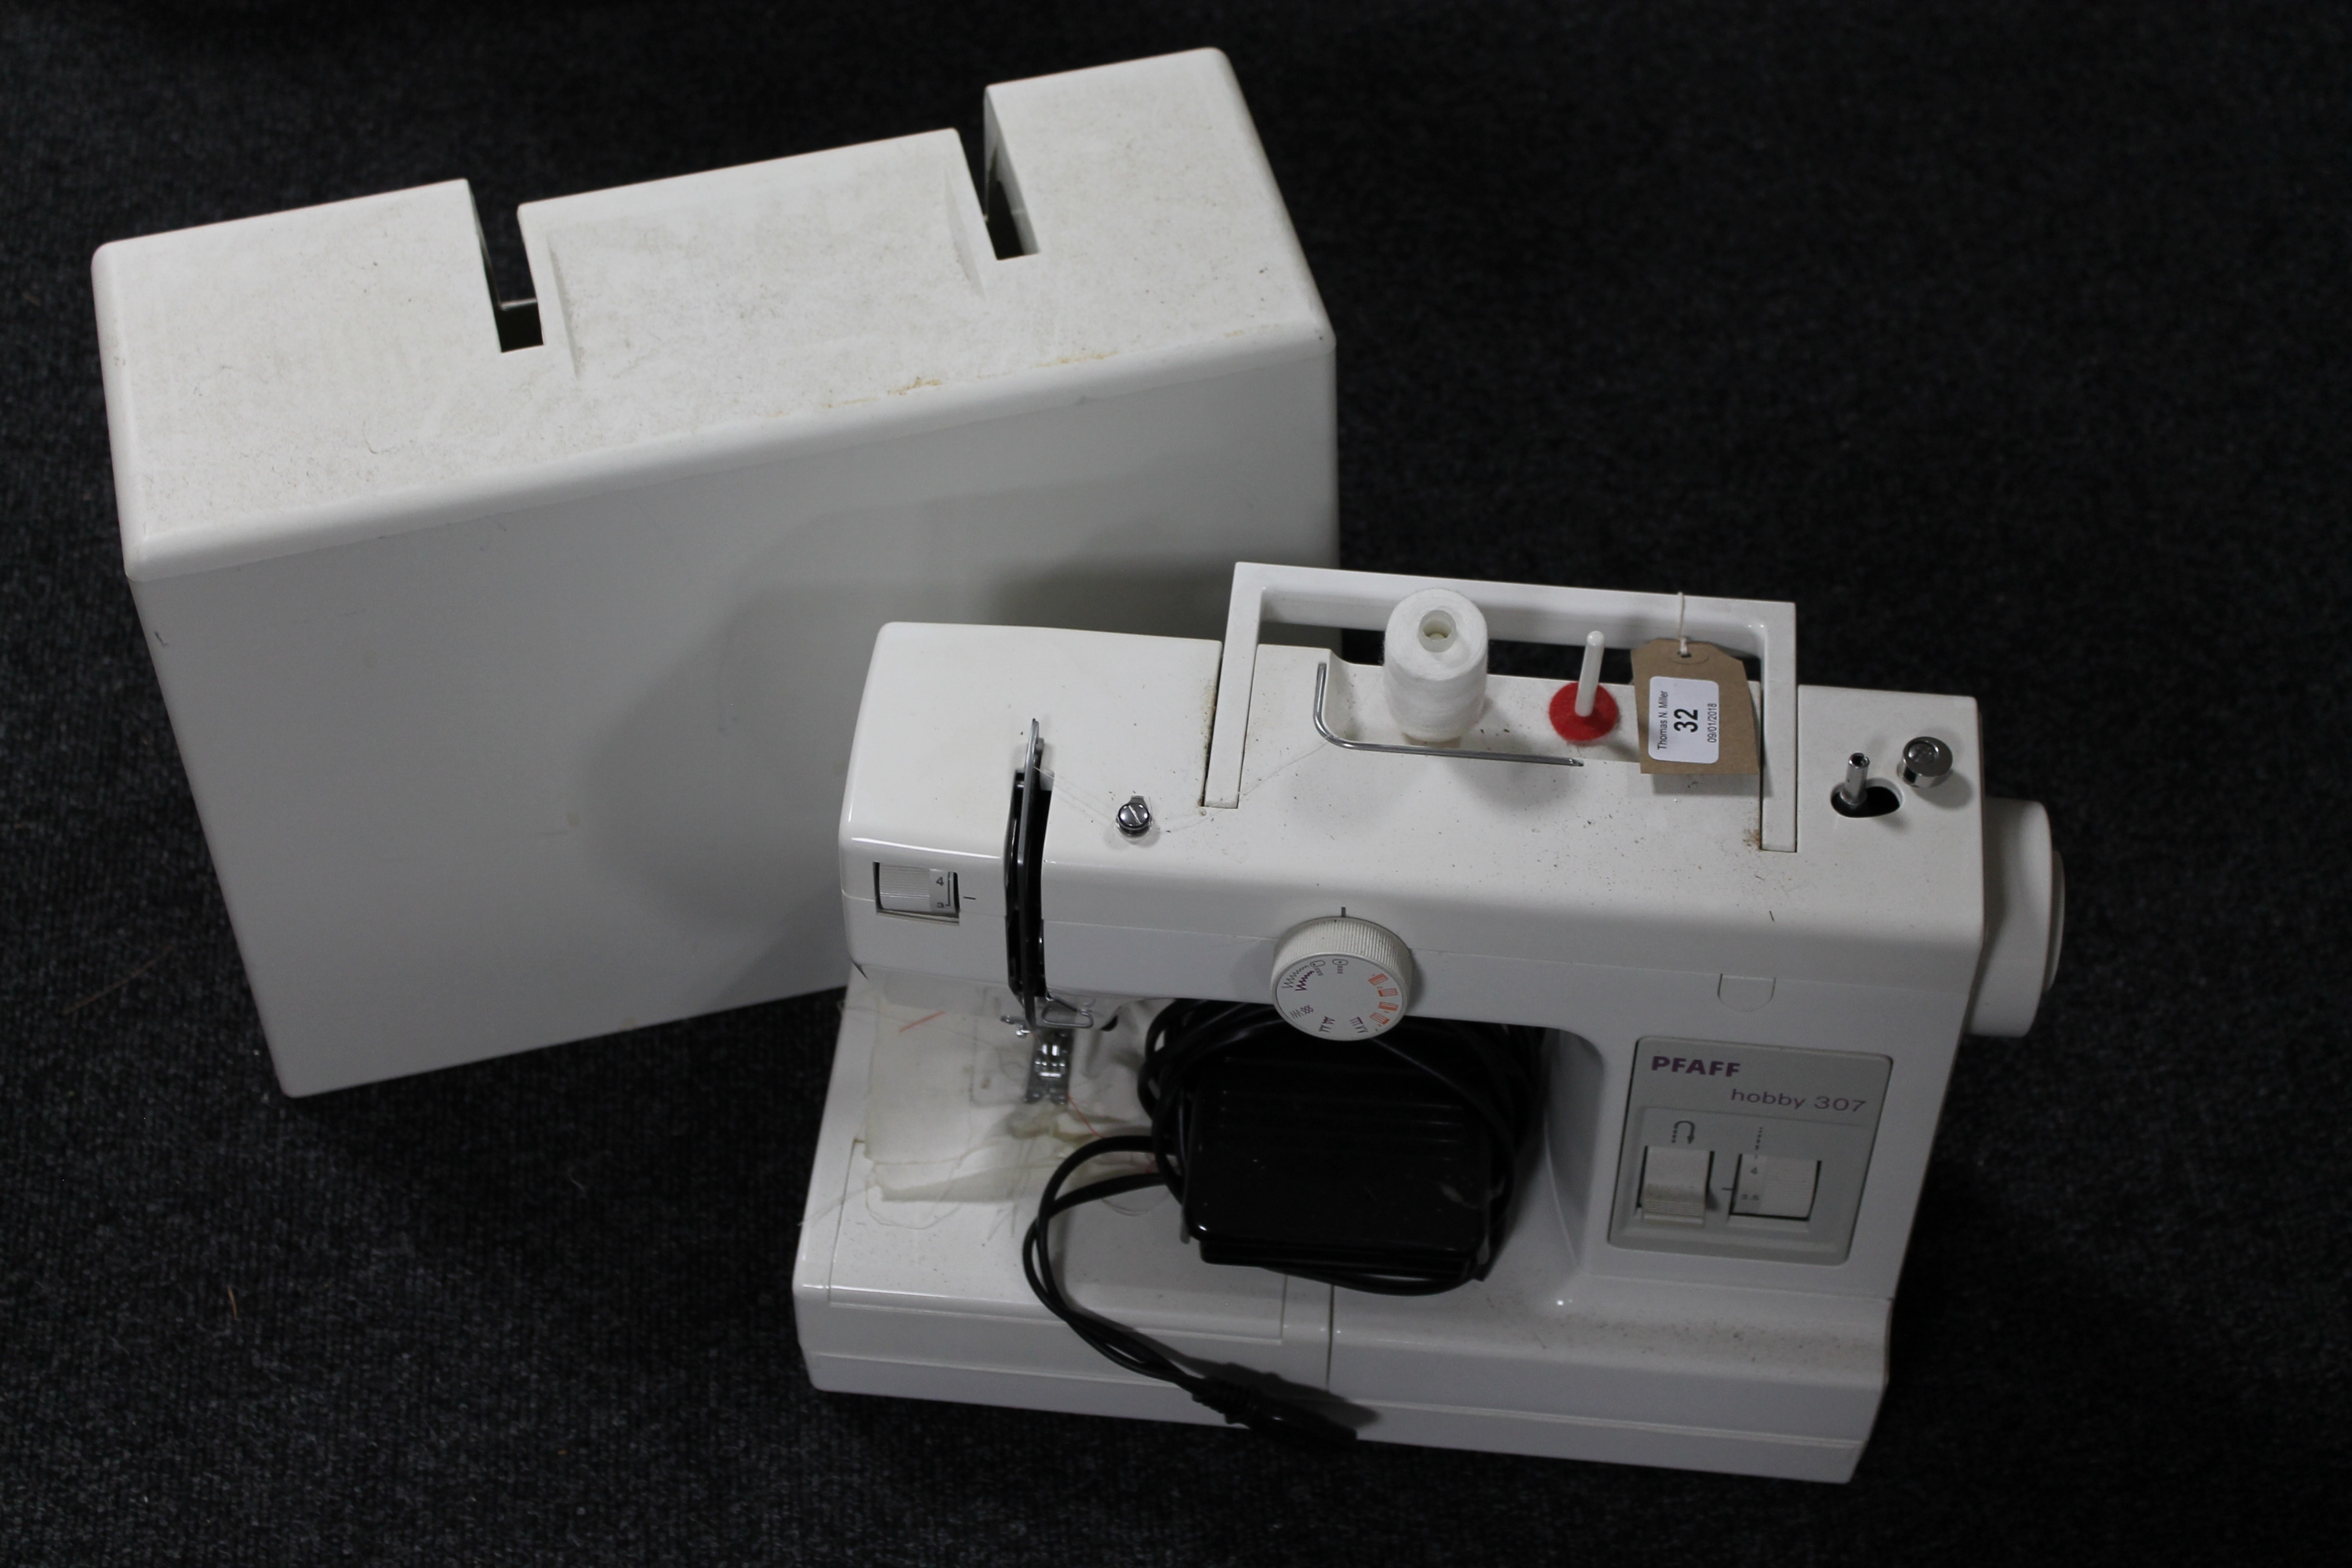 Lot 32 - A Pfaff hobby 307 electric sewing machine